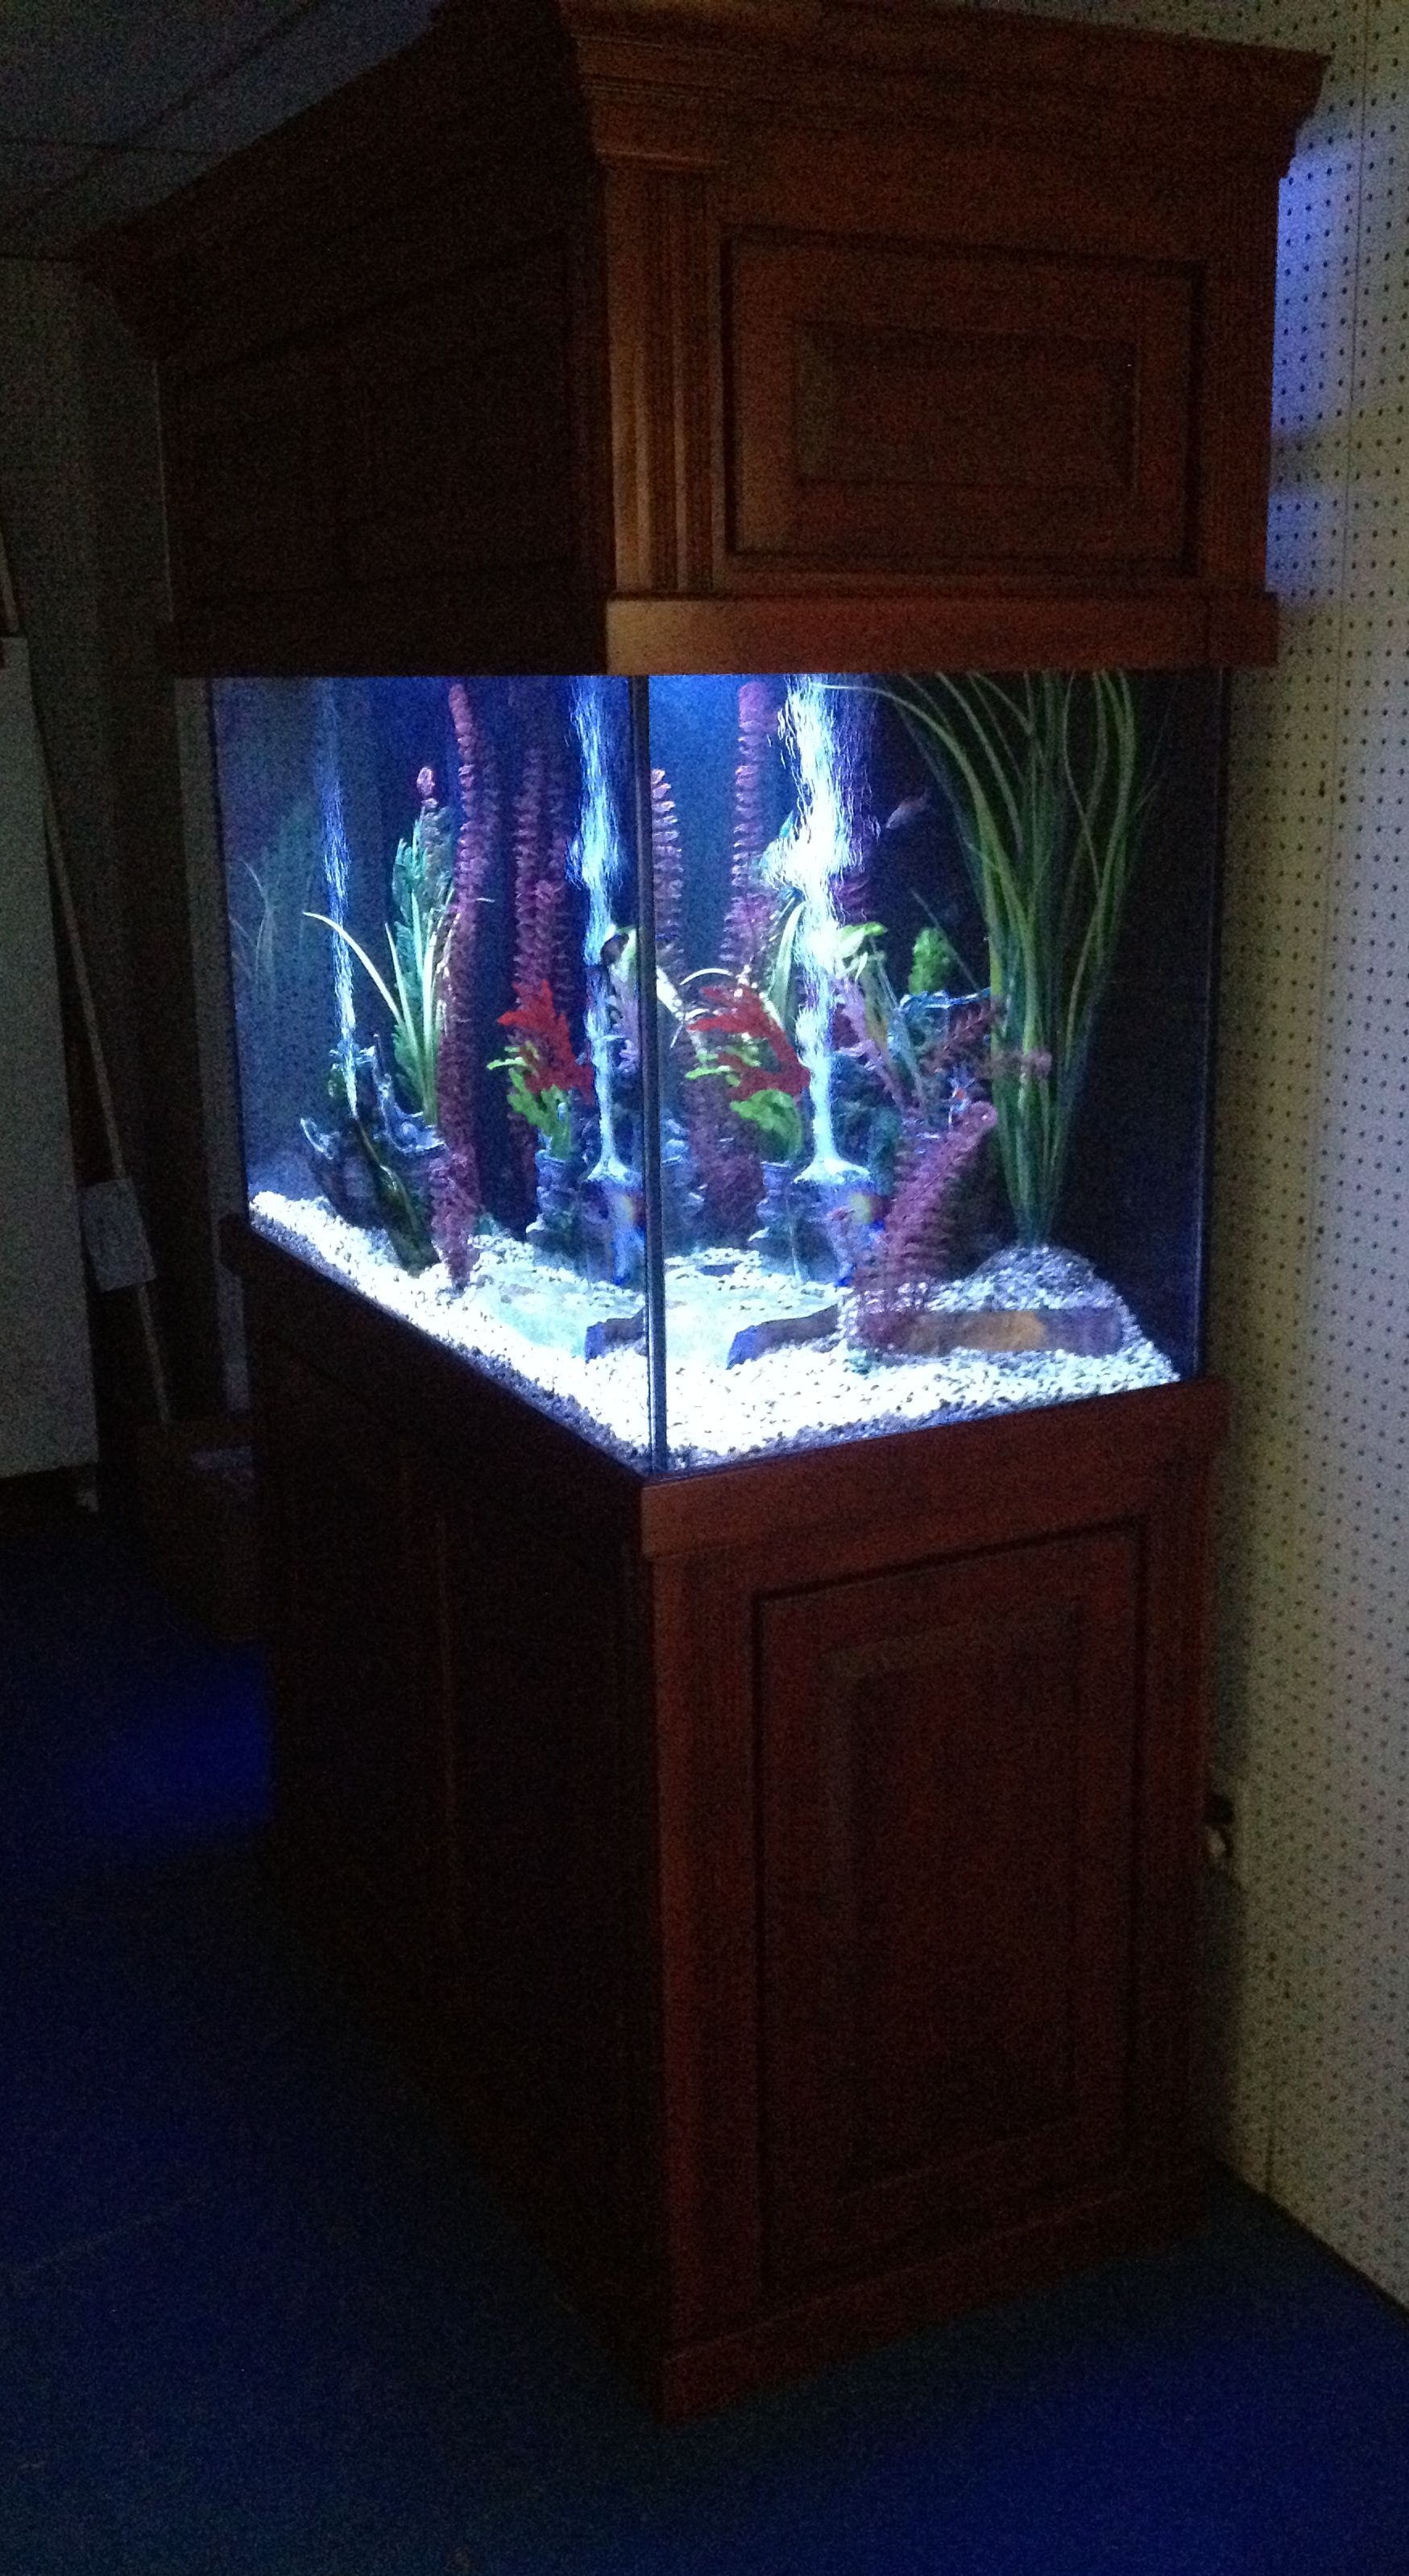 150 Gallon Super Show Mediterranean Ultimate Aquarium Package In Cherry